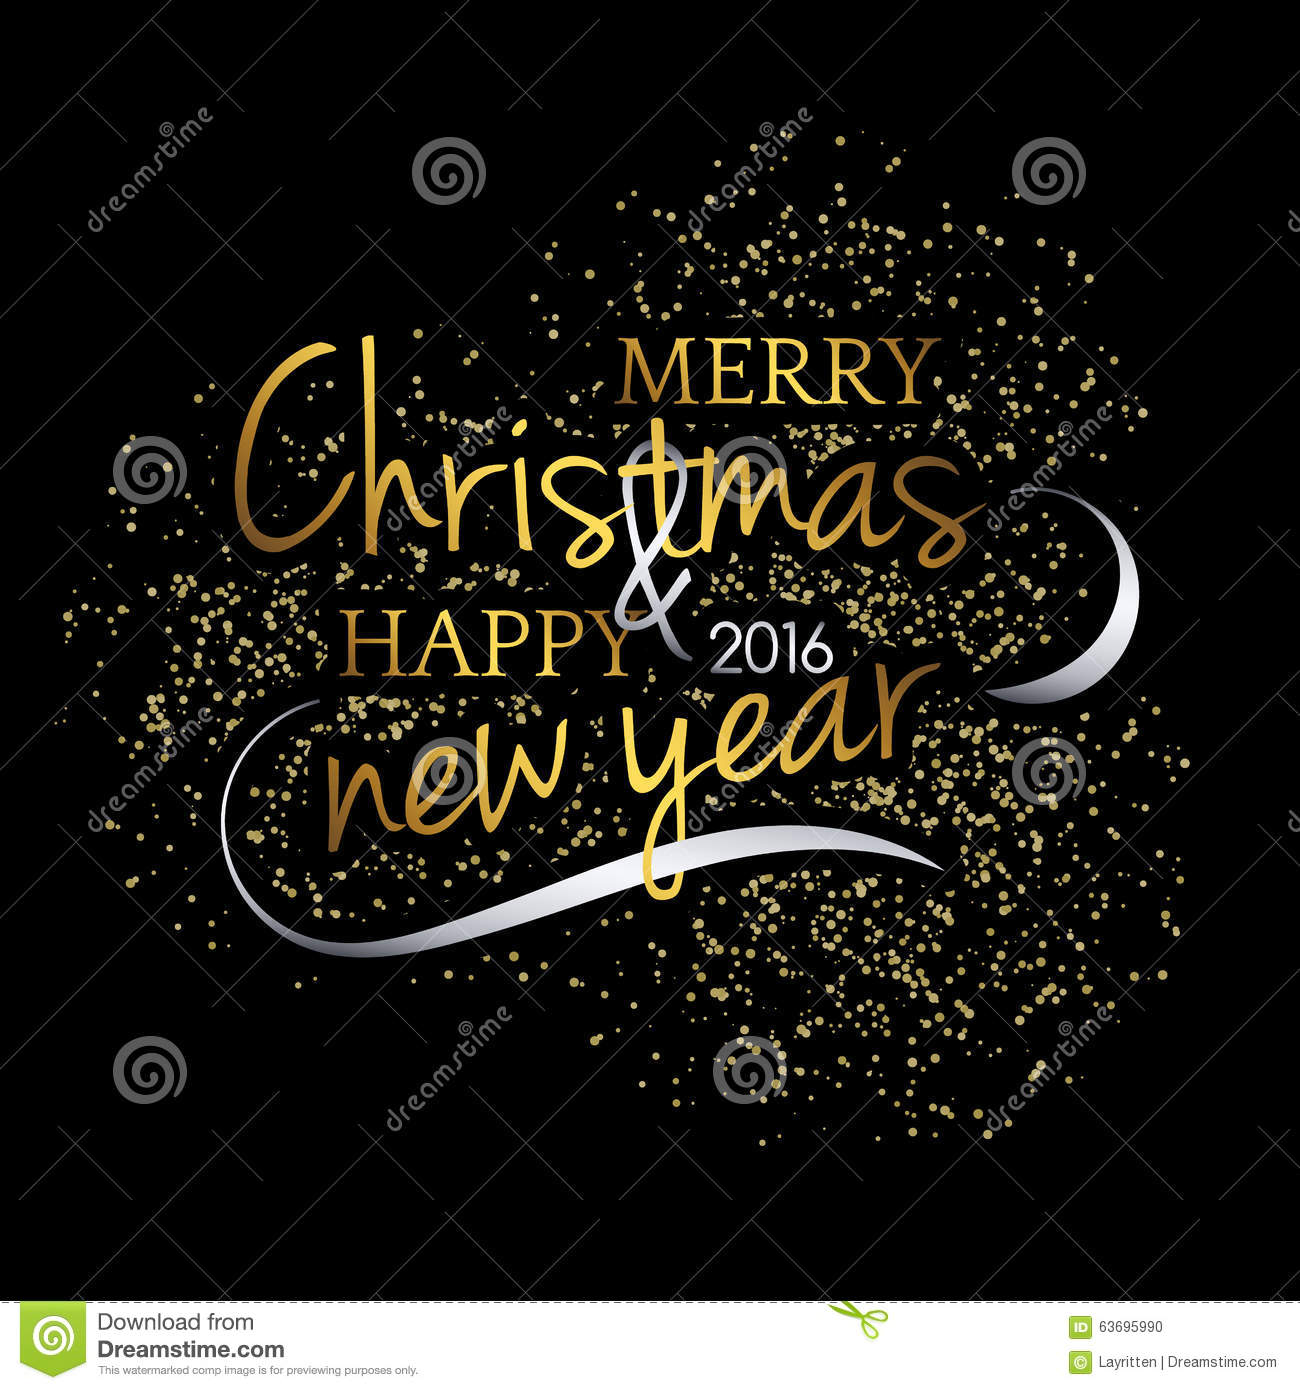 Merry Christmas Festive Black Background With Gold Calligraphic Greeting Text